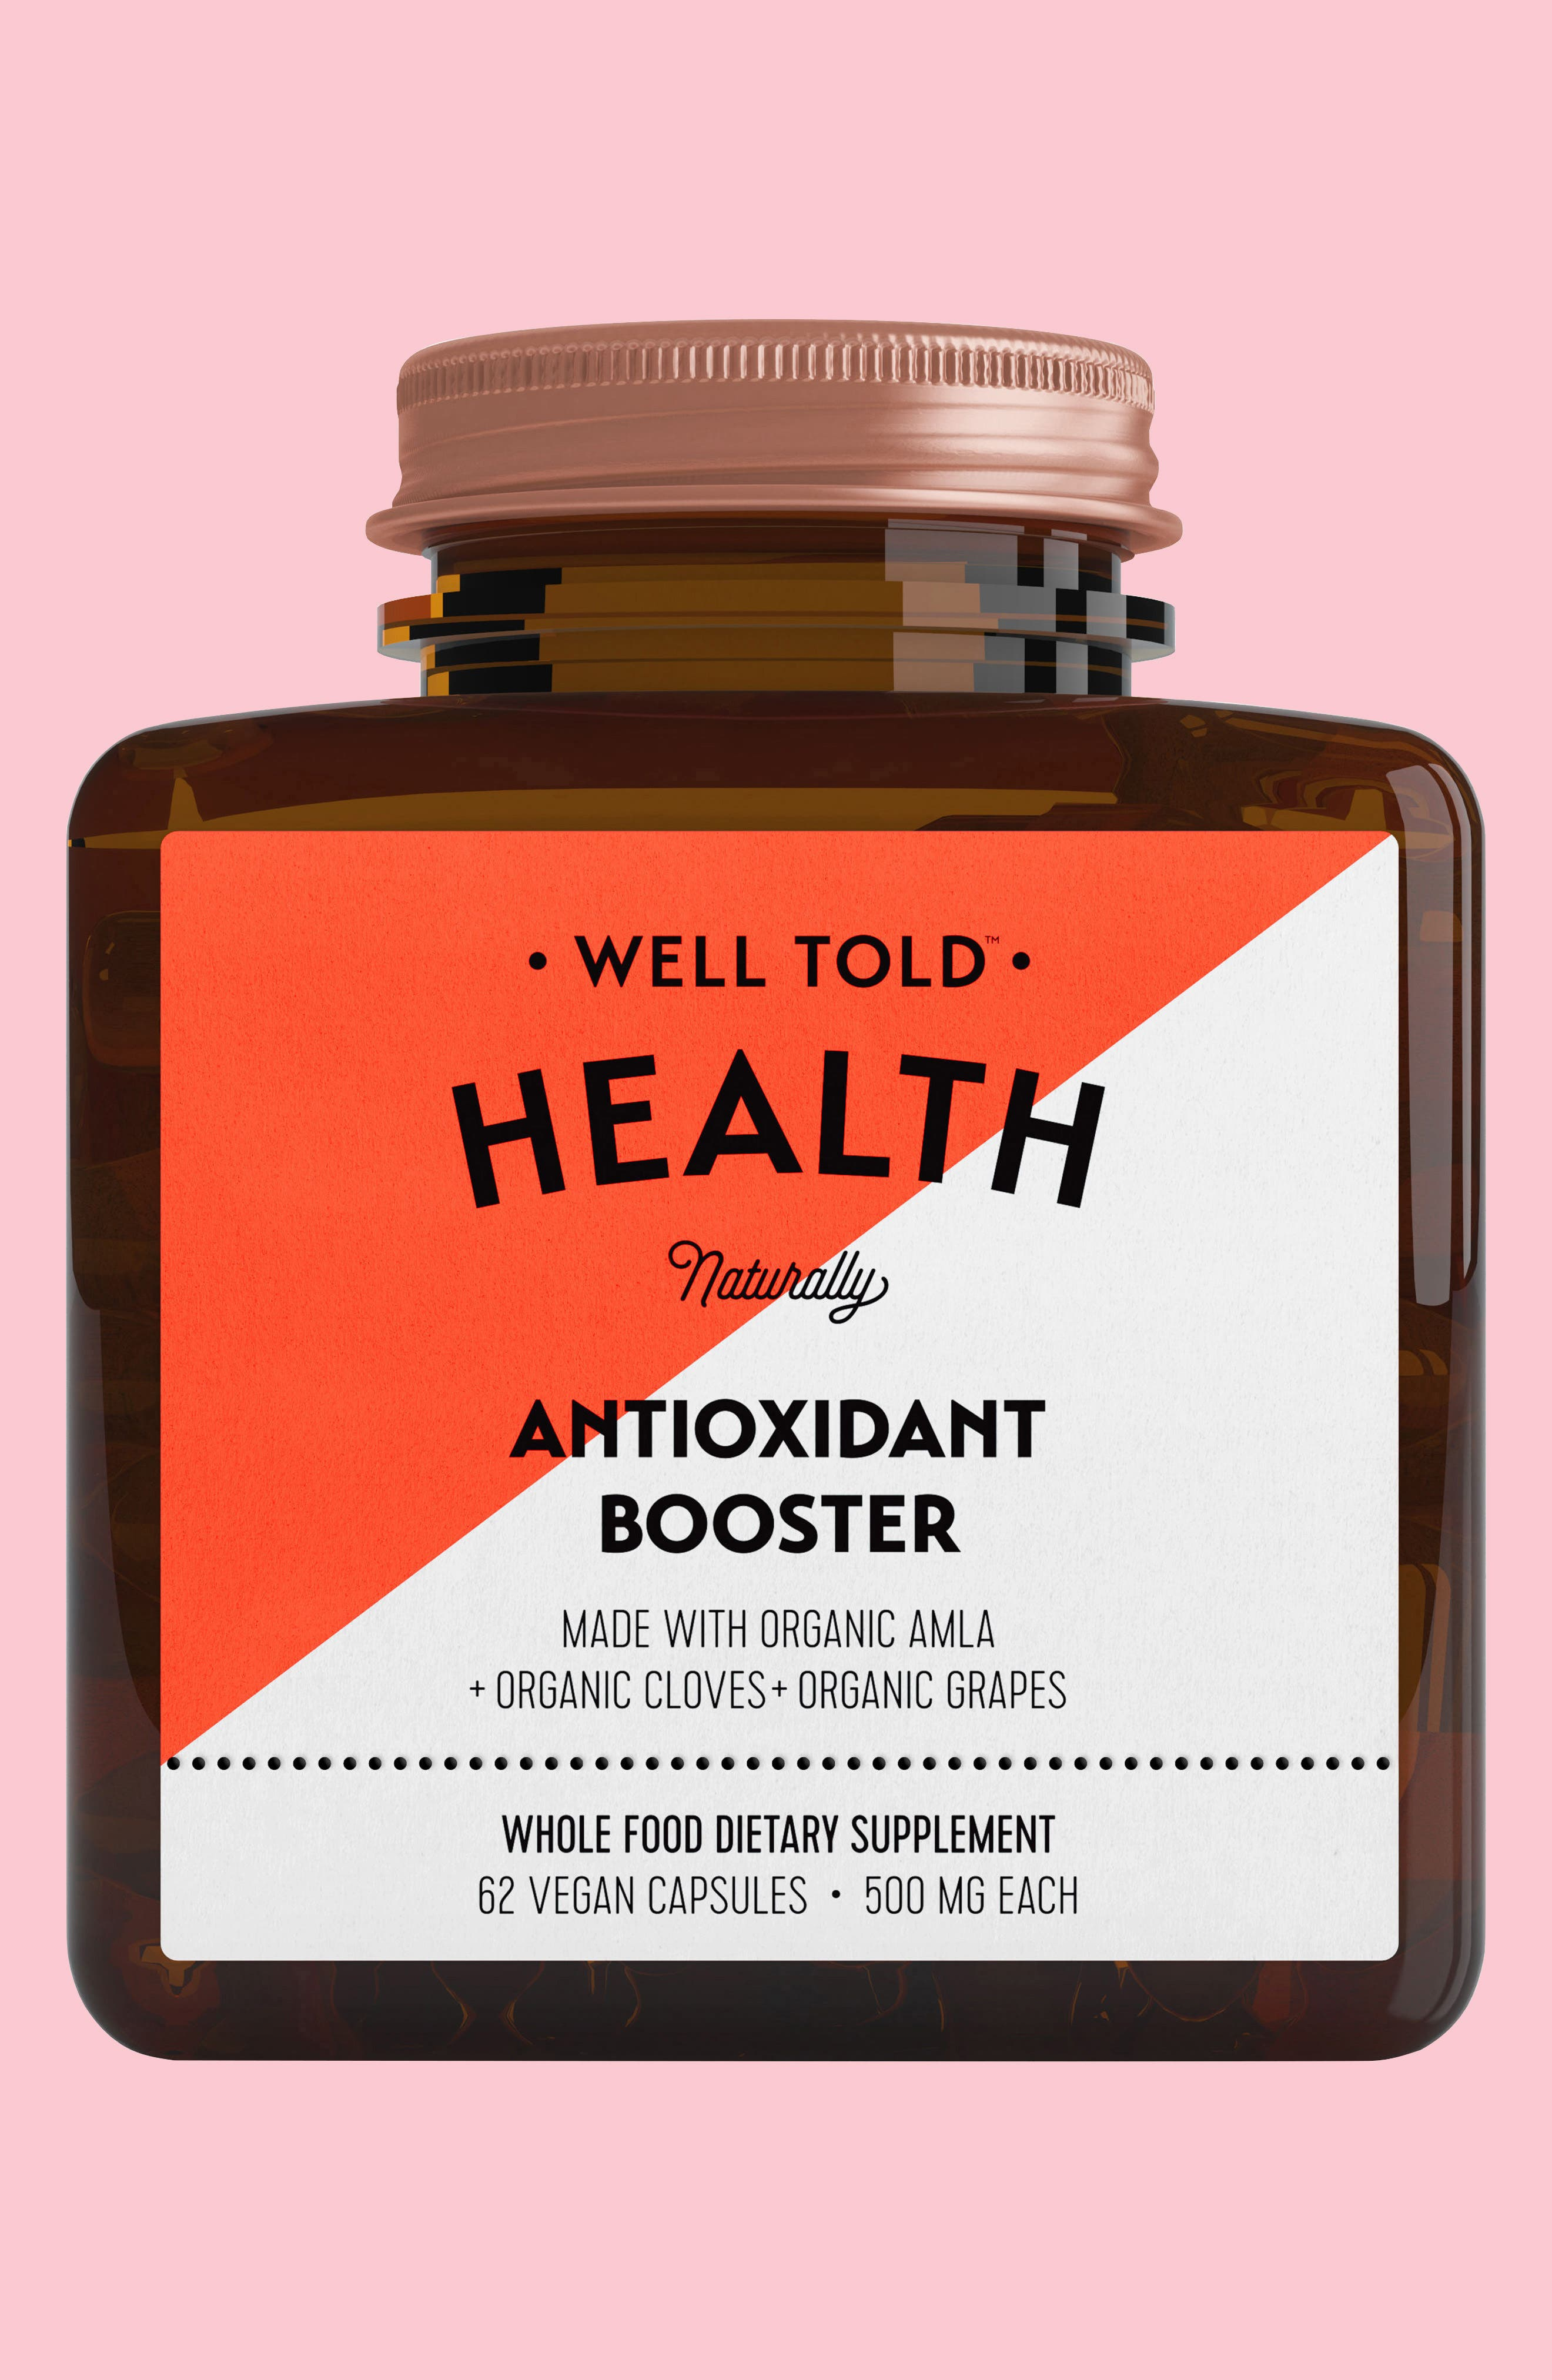 Antioxidant Booster Dietary Supplement,                             Main thumbnail 1, color,                             800